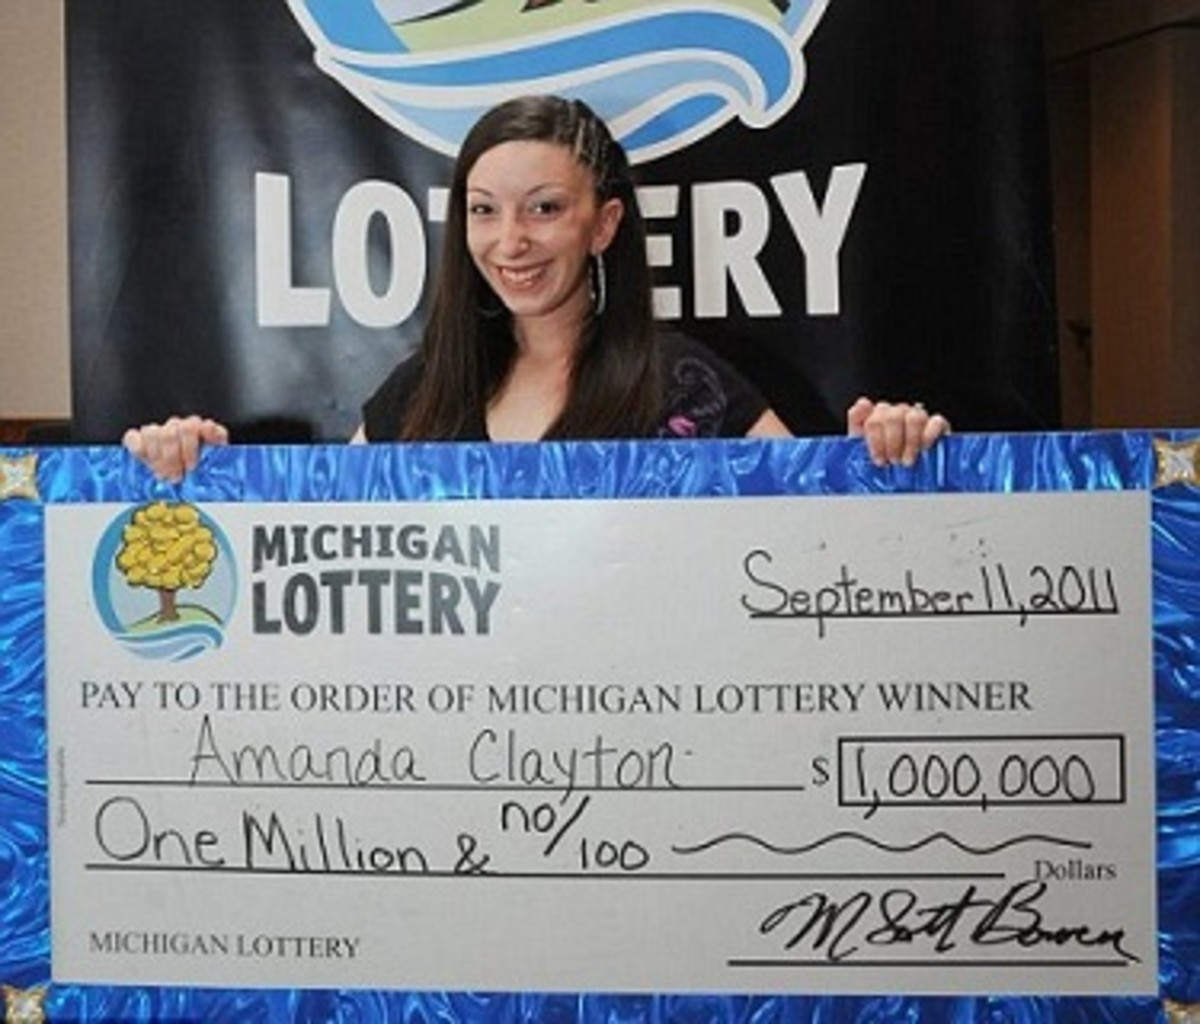 Welfare Recipient and $1 million lottery winner Amanda Clayton.